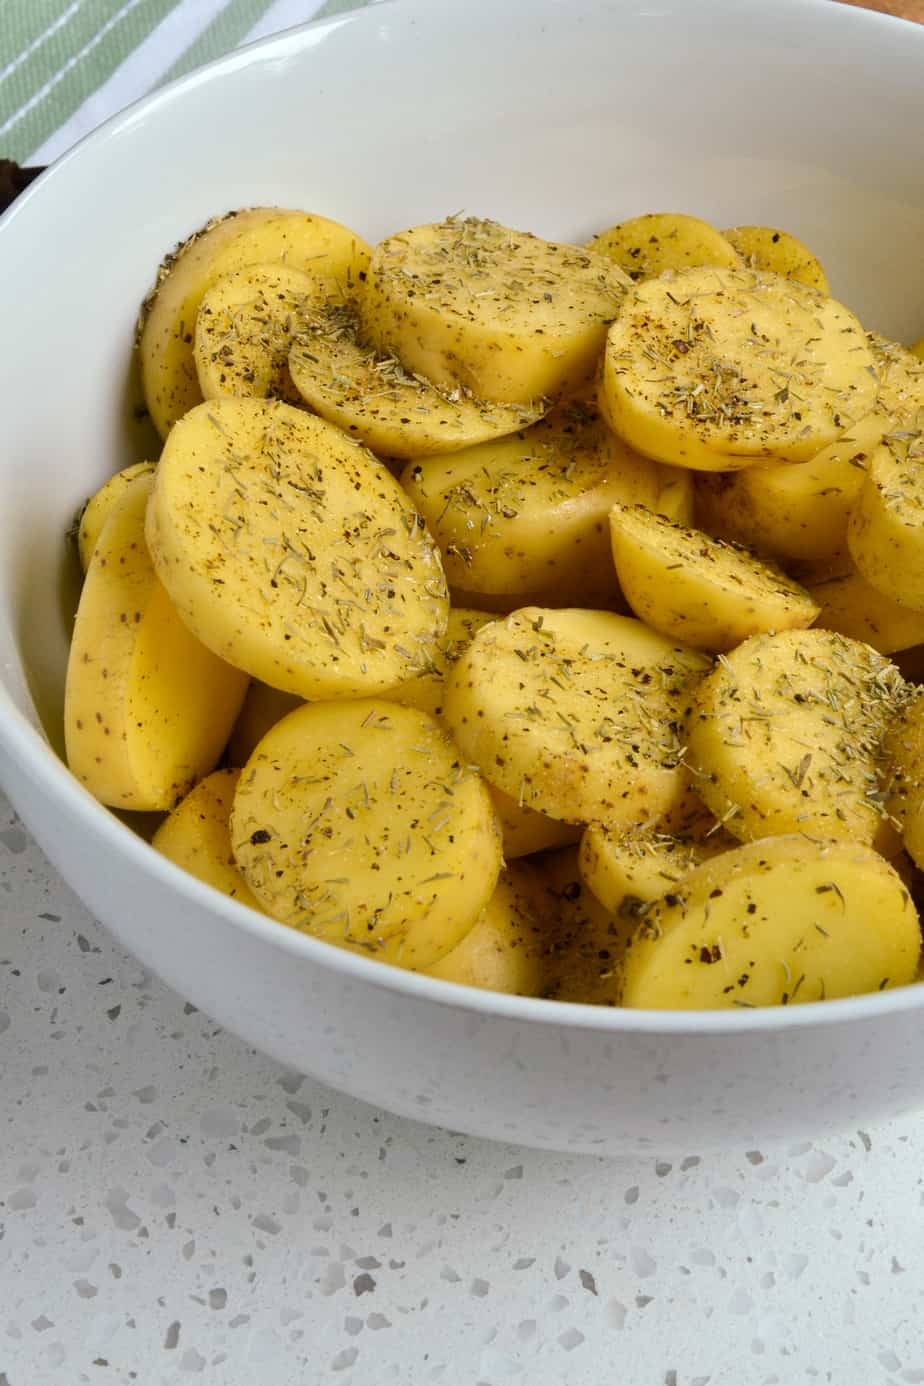 Raw Yukon Gold Potatoes mixed with oil and dried herbs